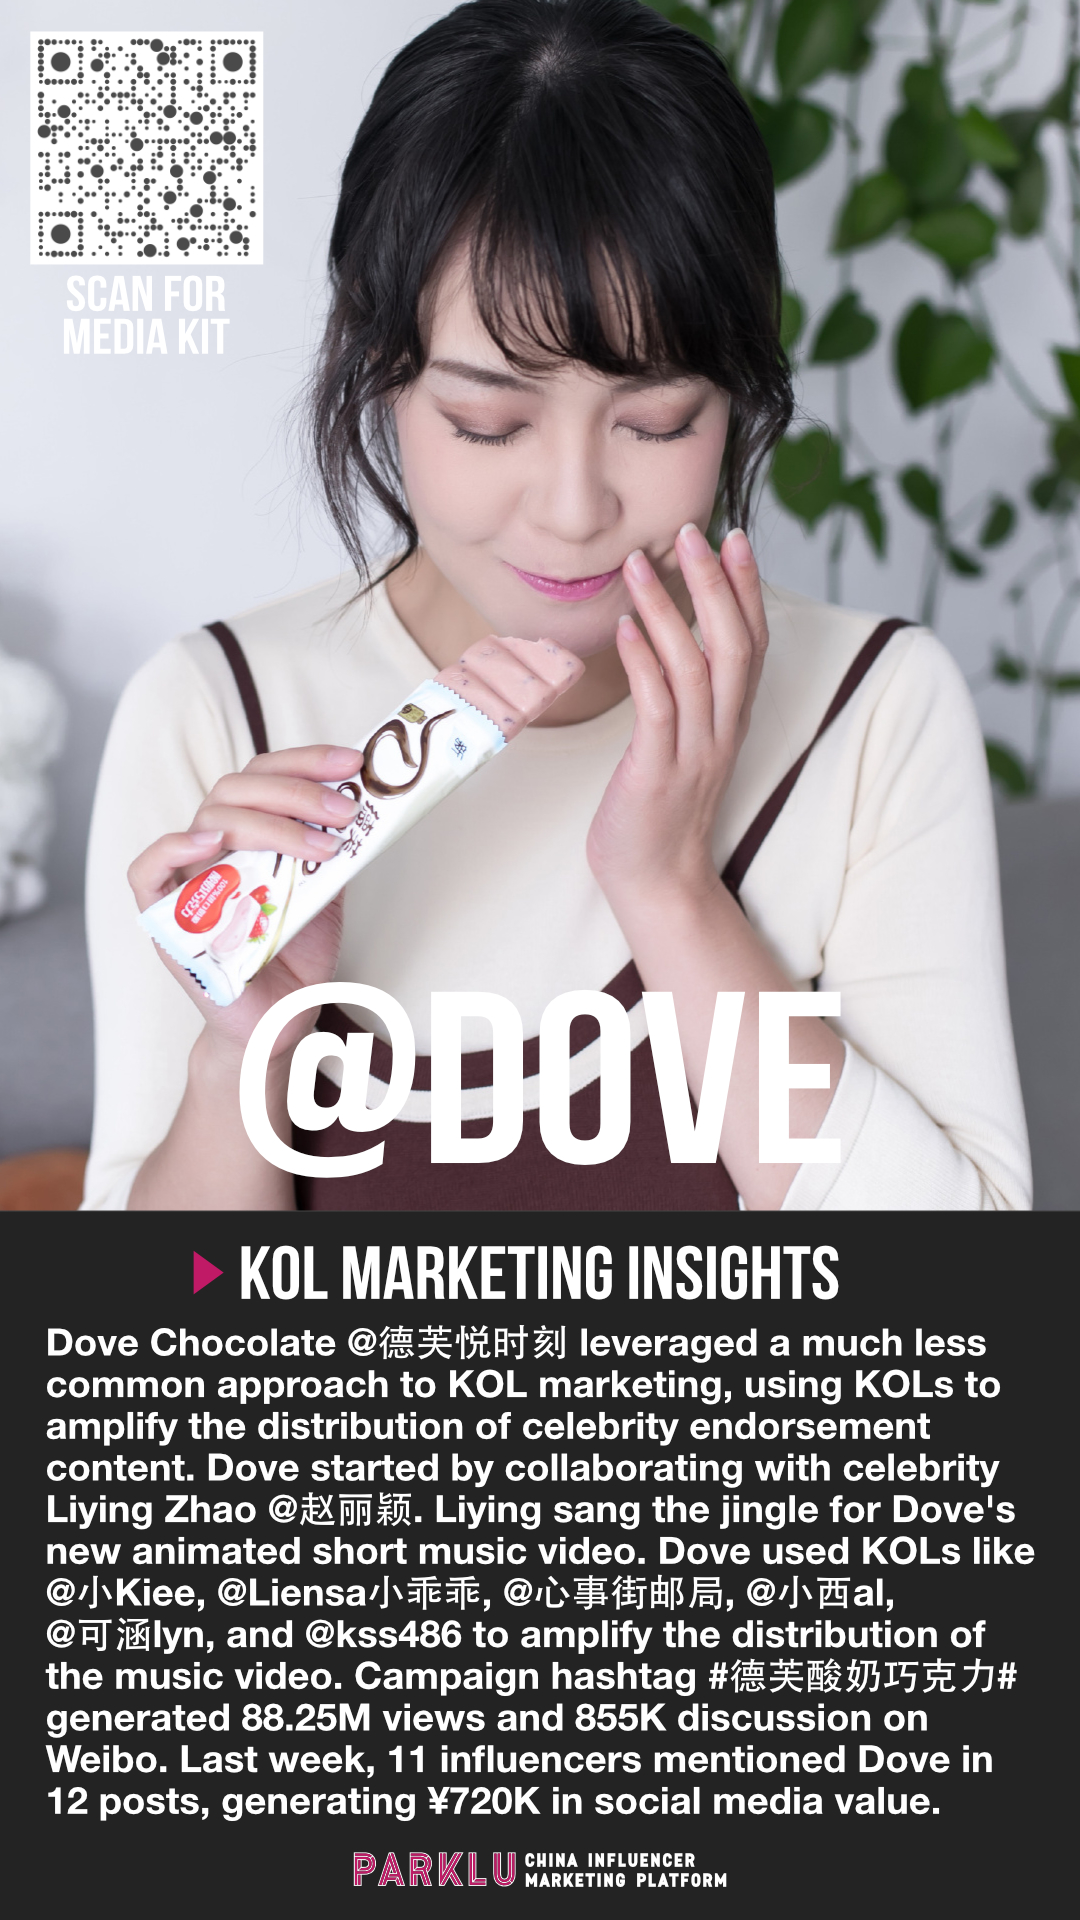 Dove Chocolate Celebrity Content & KOL Amplification in China